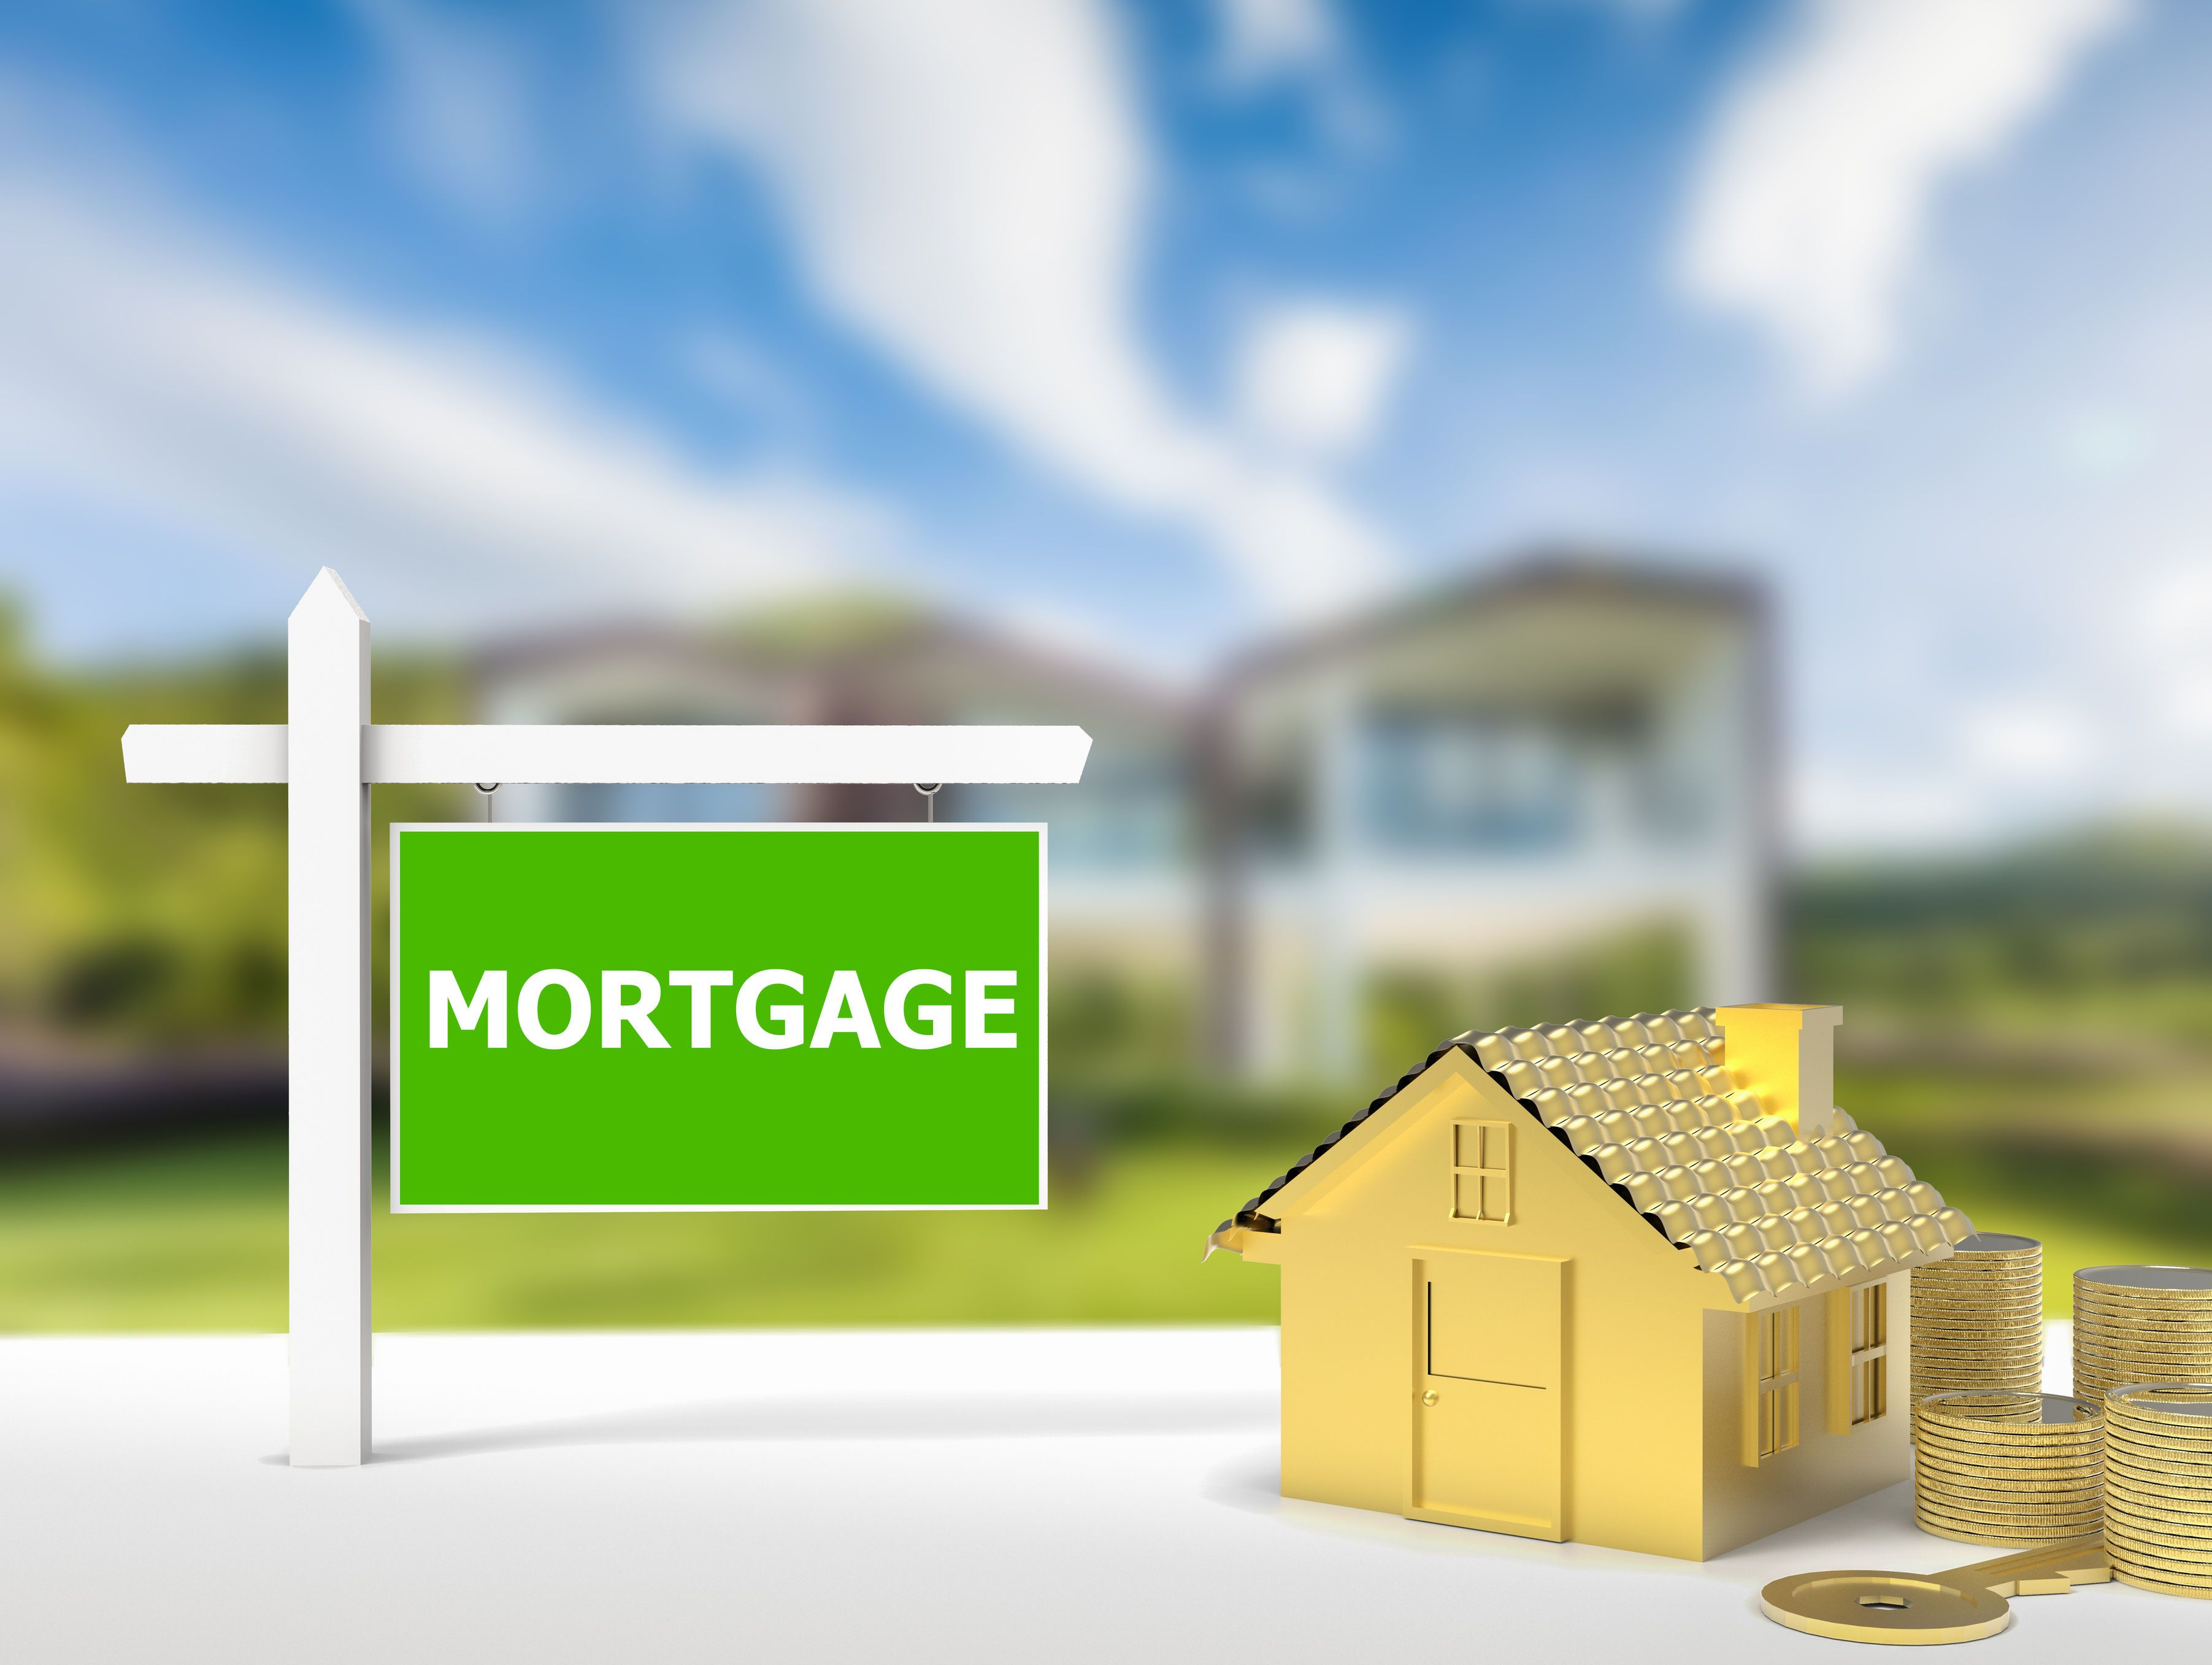 Mortgage Loan officers are known for being able to give